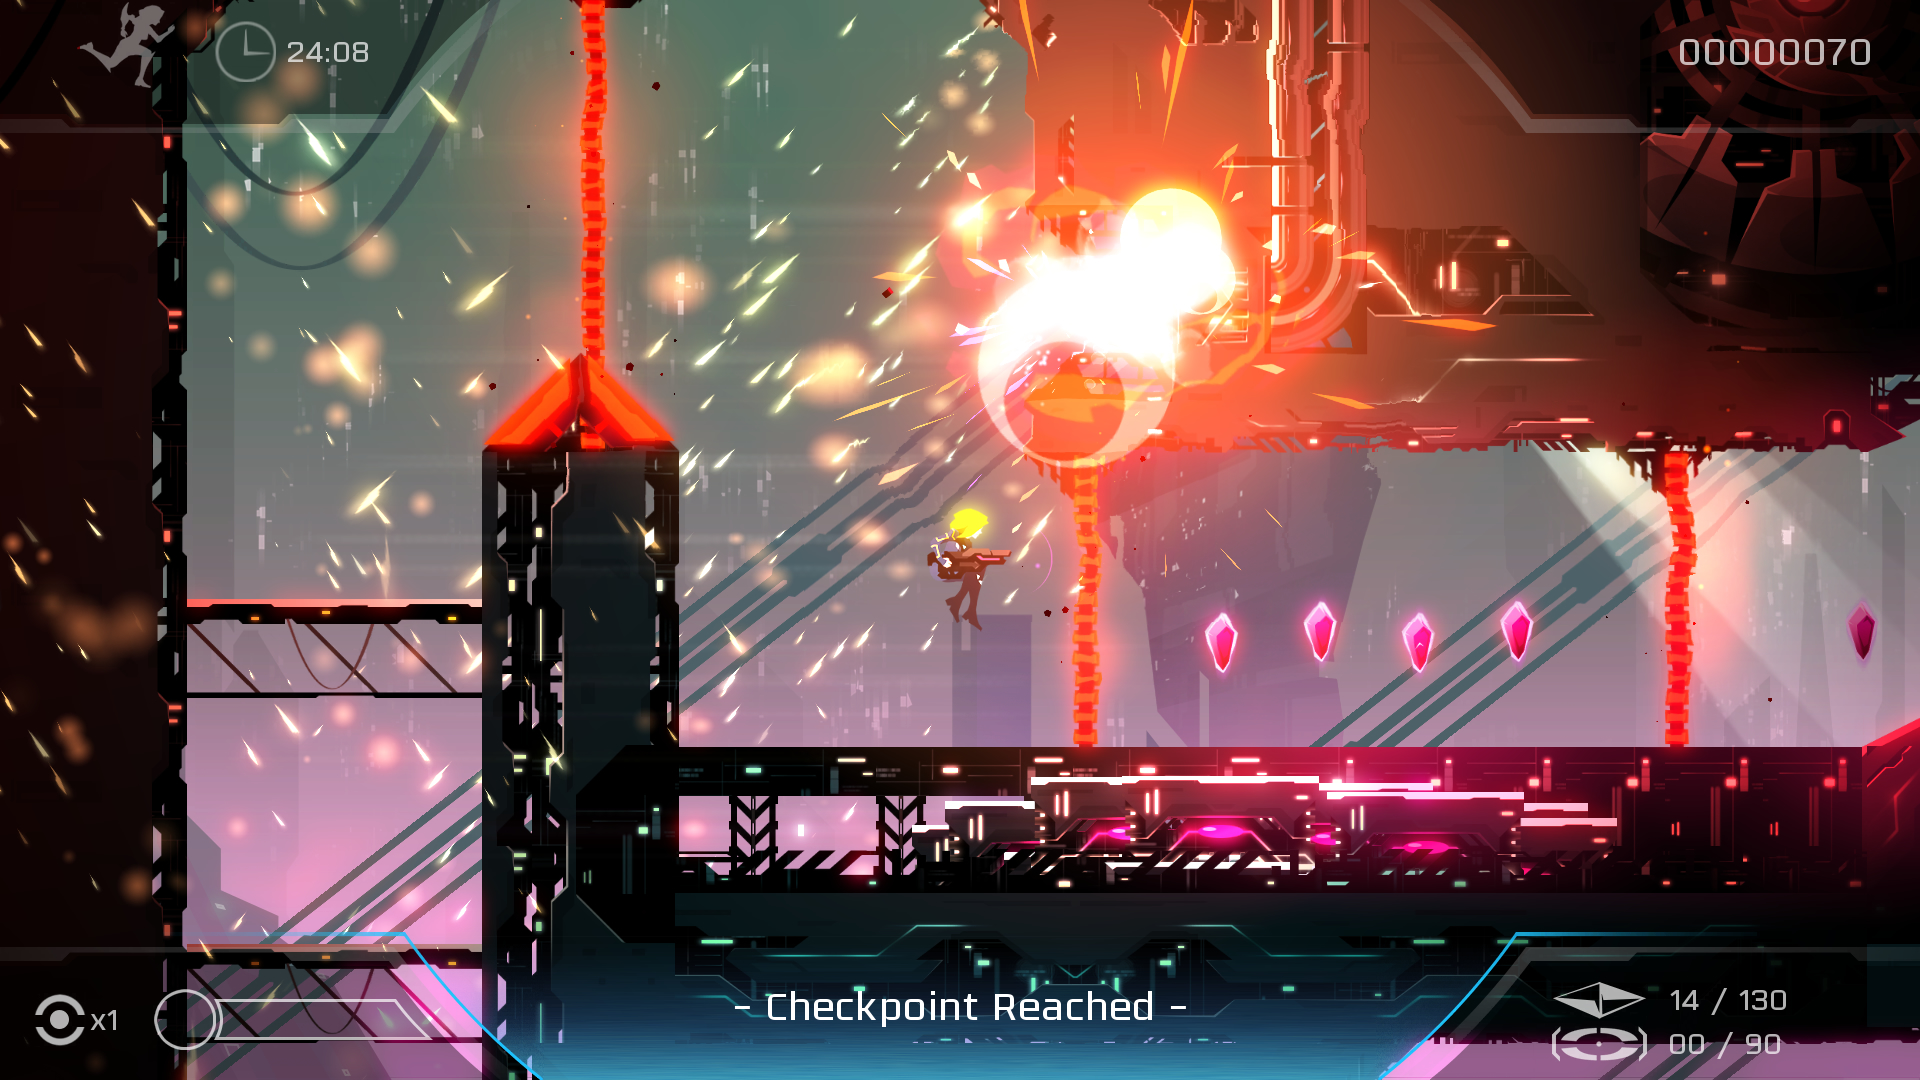 Velocity 2X pushes the Vita hardware to achieve all these visual effects at 60fps.